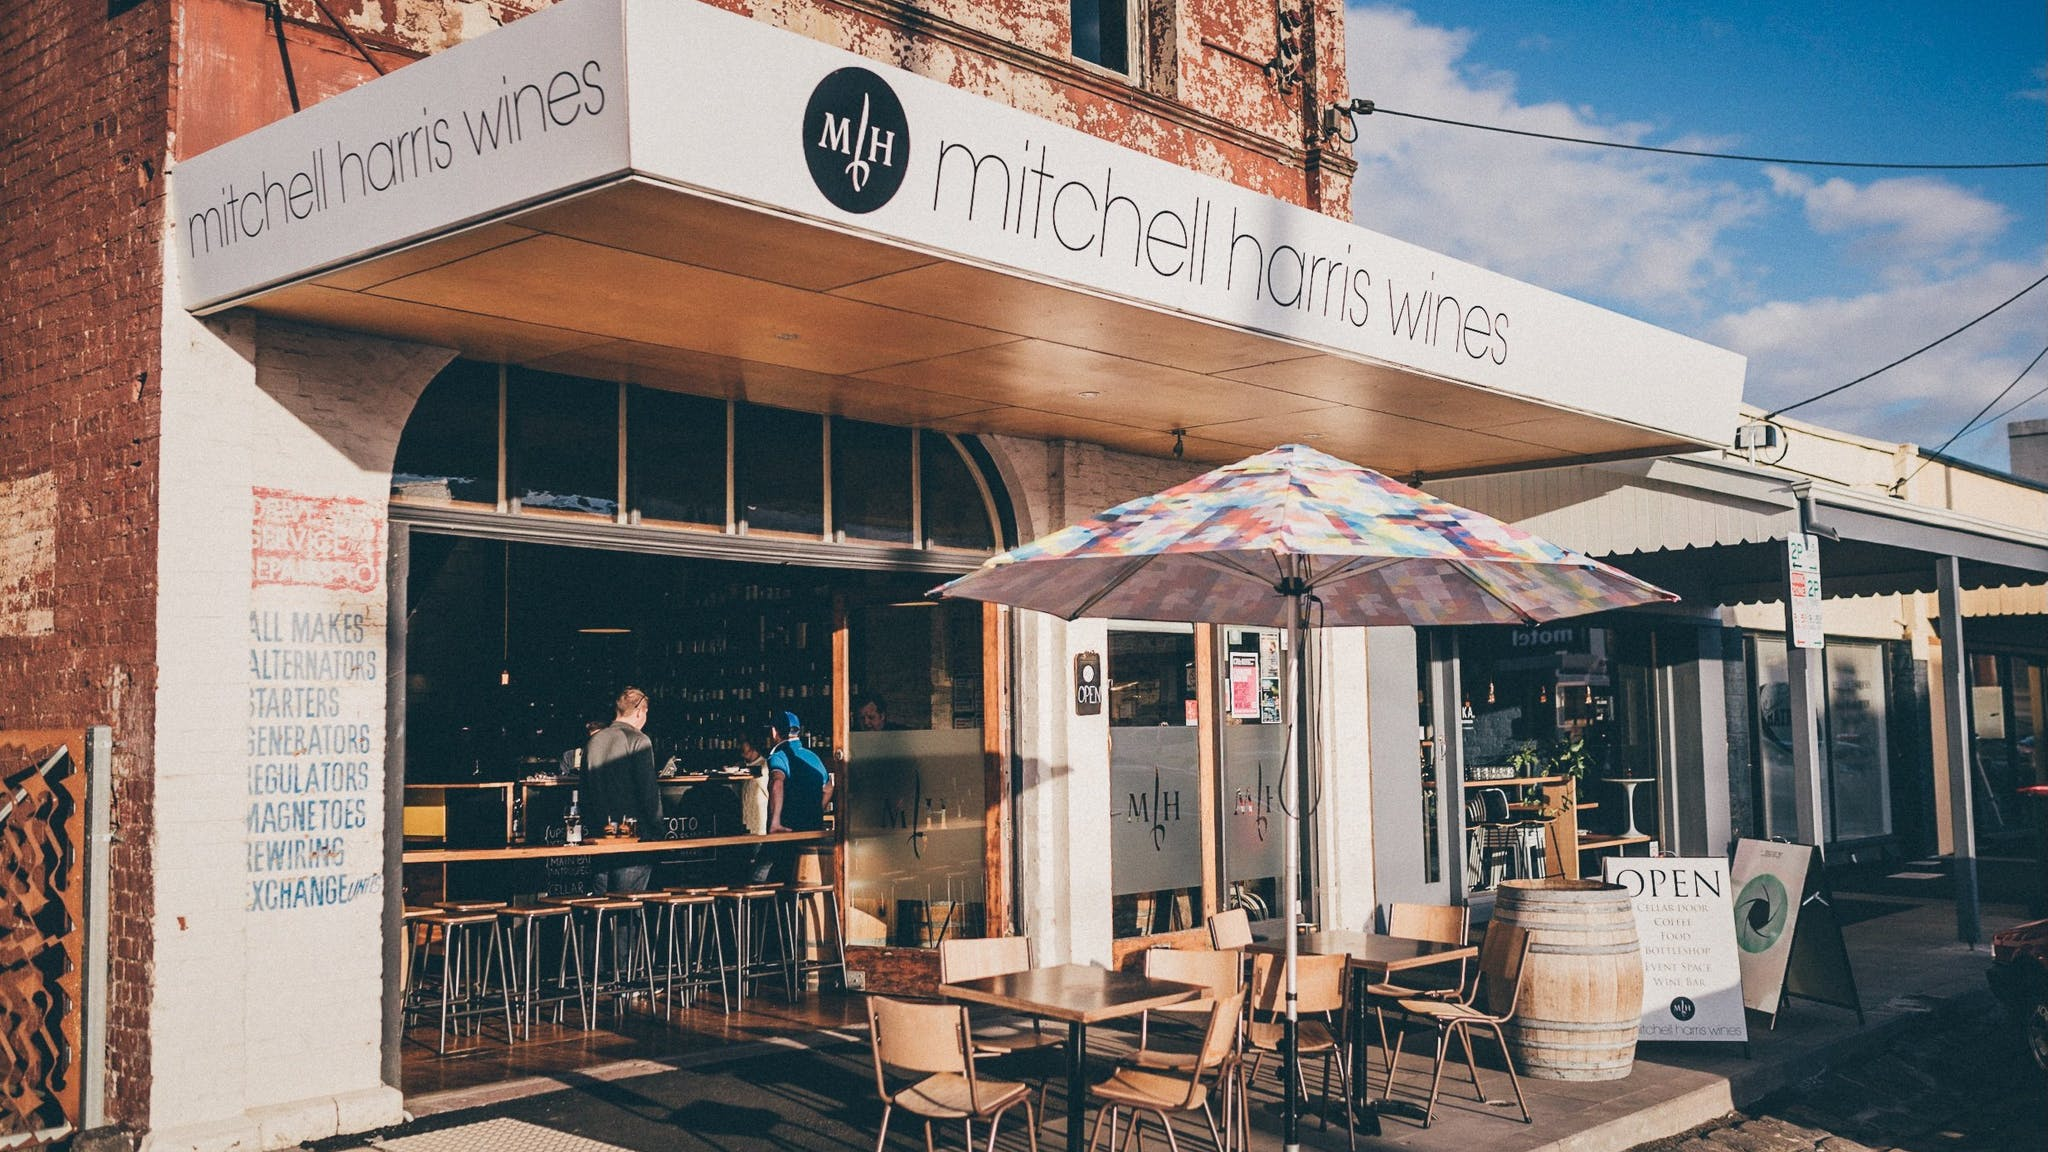 Mitchell Harris Wine Bar